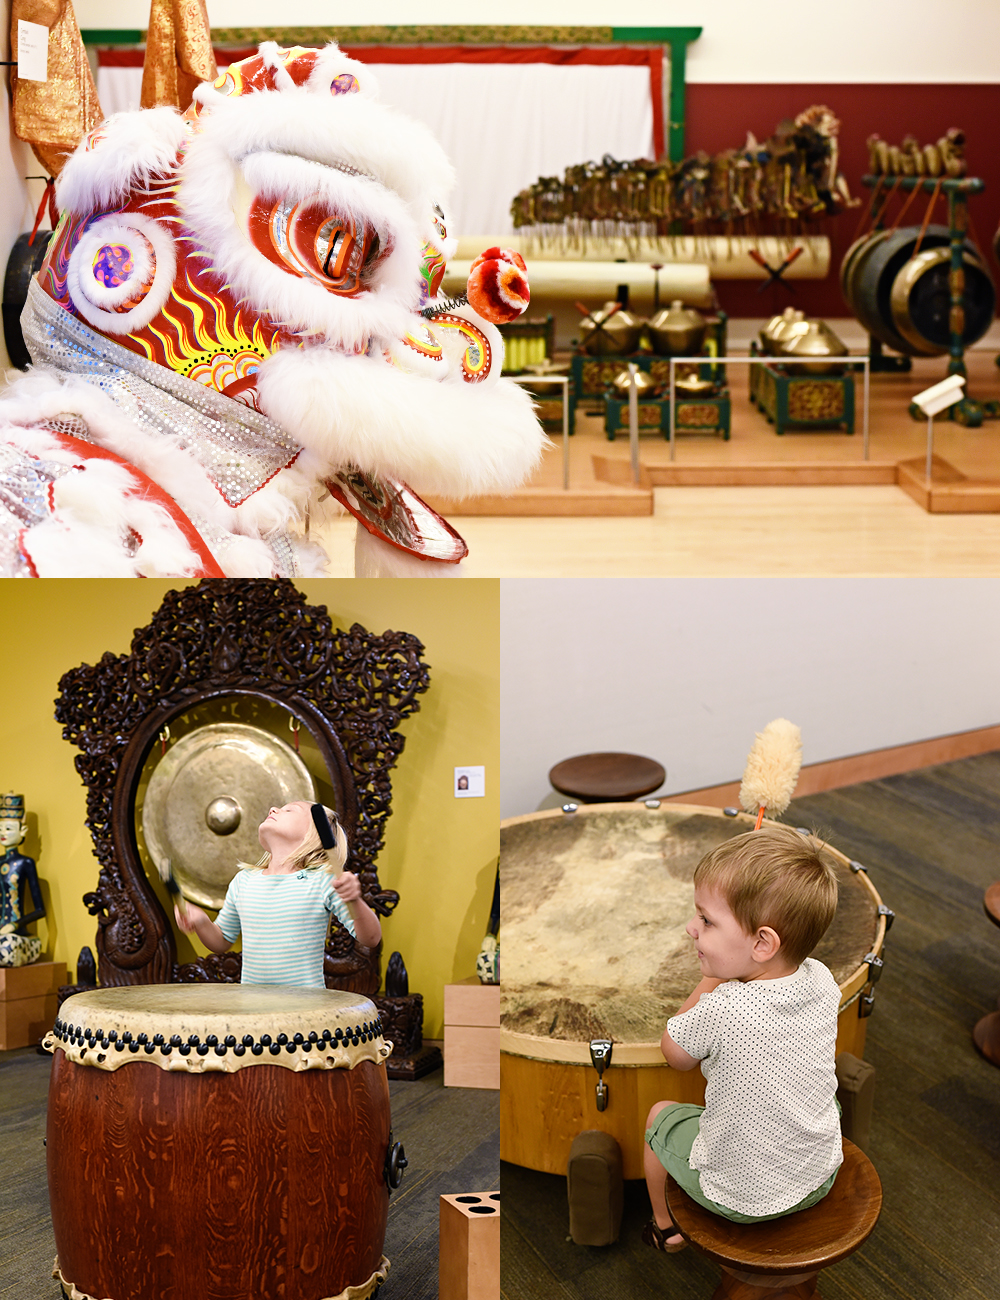 Guide to visiting the MIM (Musical Instrument Museum) in Scottsdale, Arizona: regalia and instruments to look at and some to play as well!